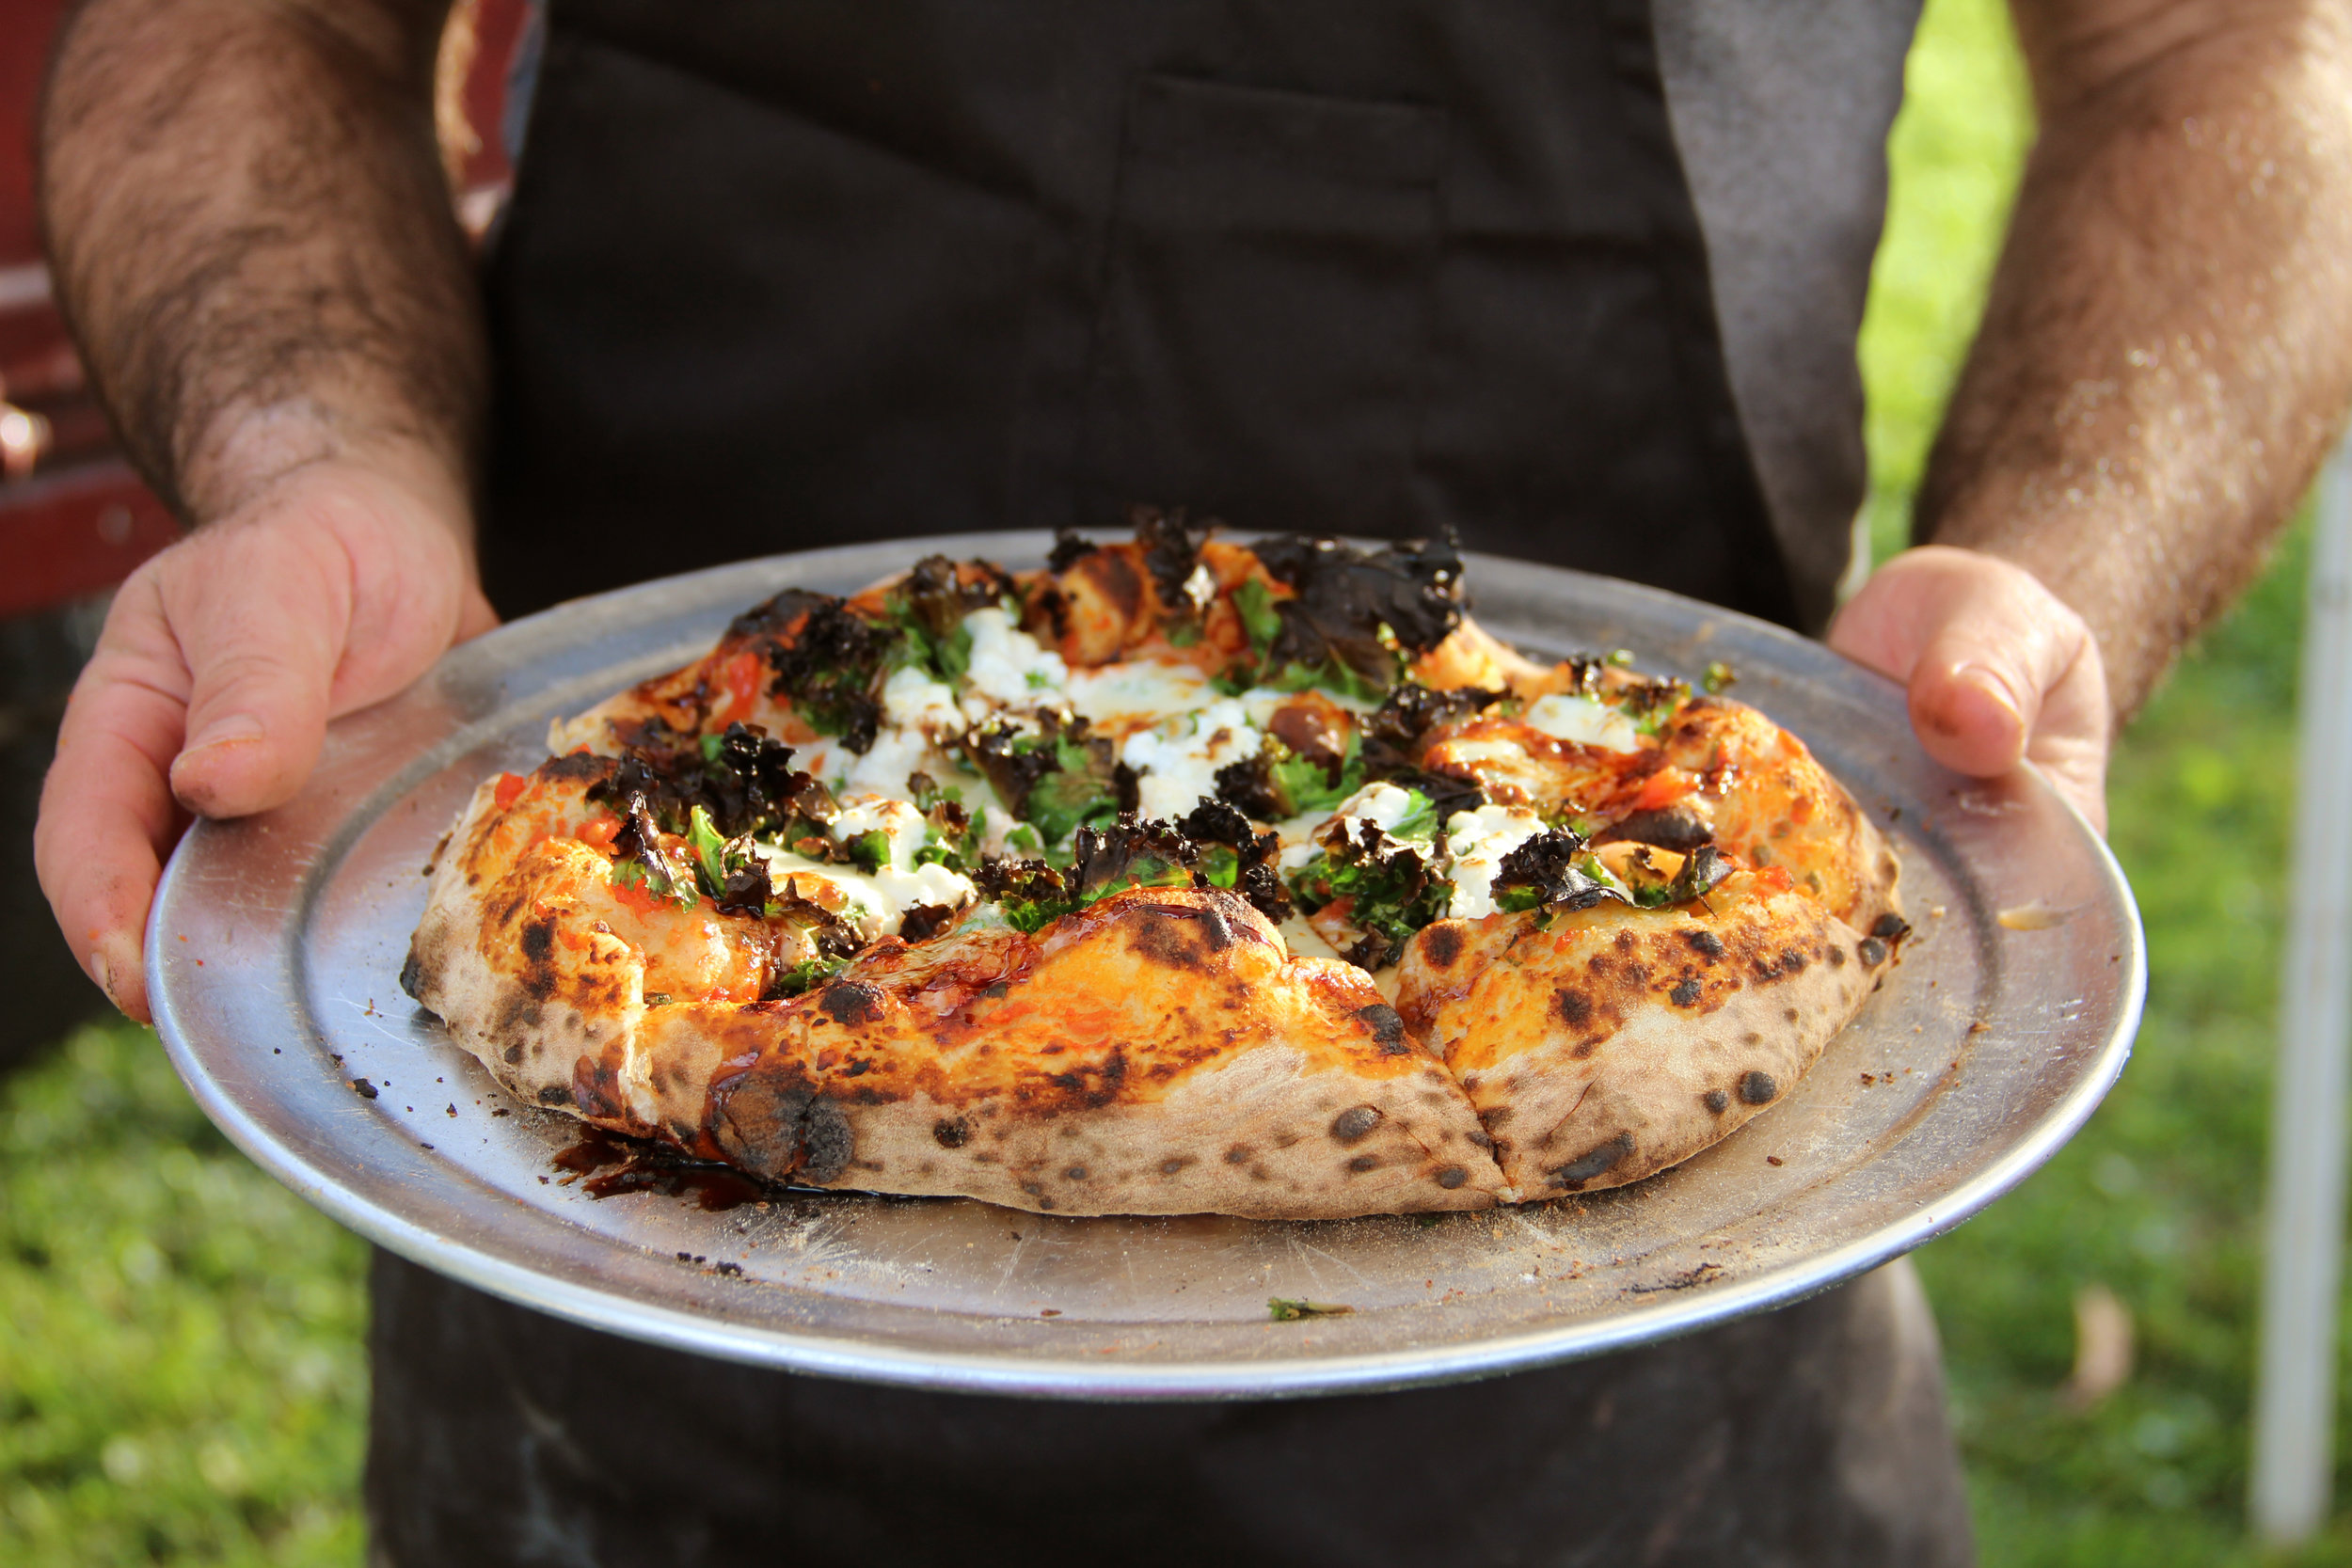 Doug Cullen Wood Fired Fermented Pizza Truck Catering Events Weddings Hudson Valley Westchester Hastings on Hudson NYC Sourdough.jpg